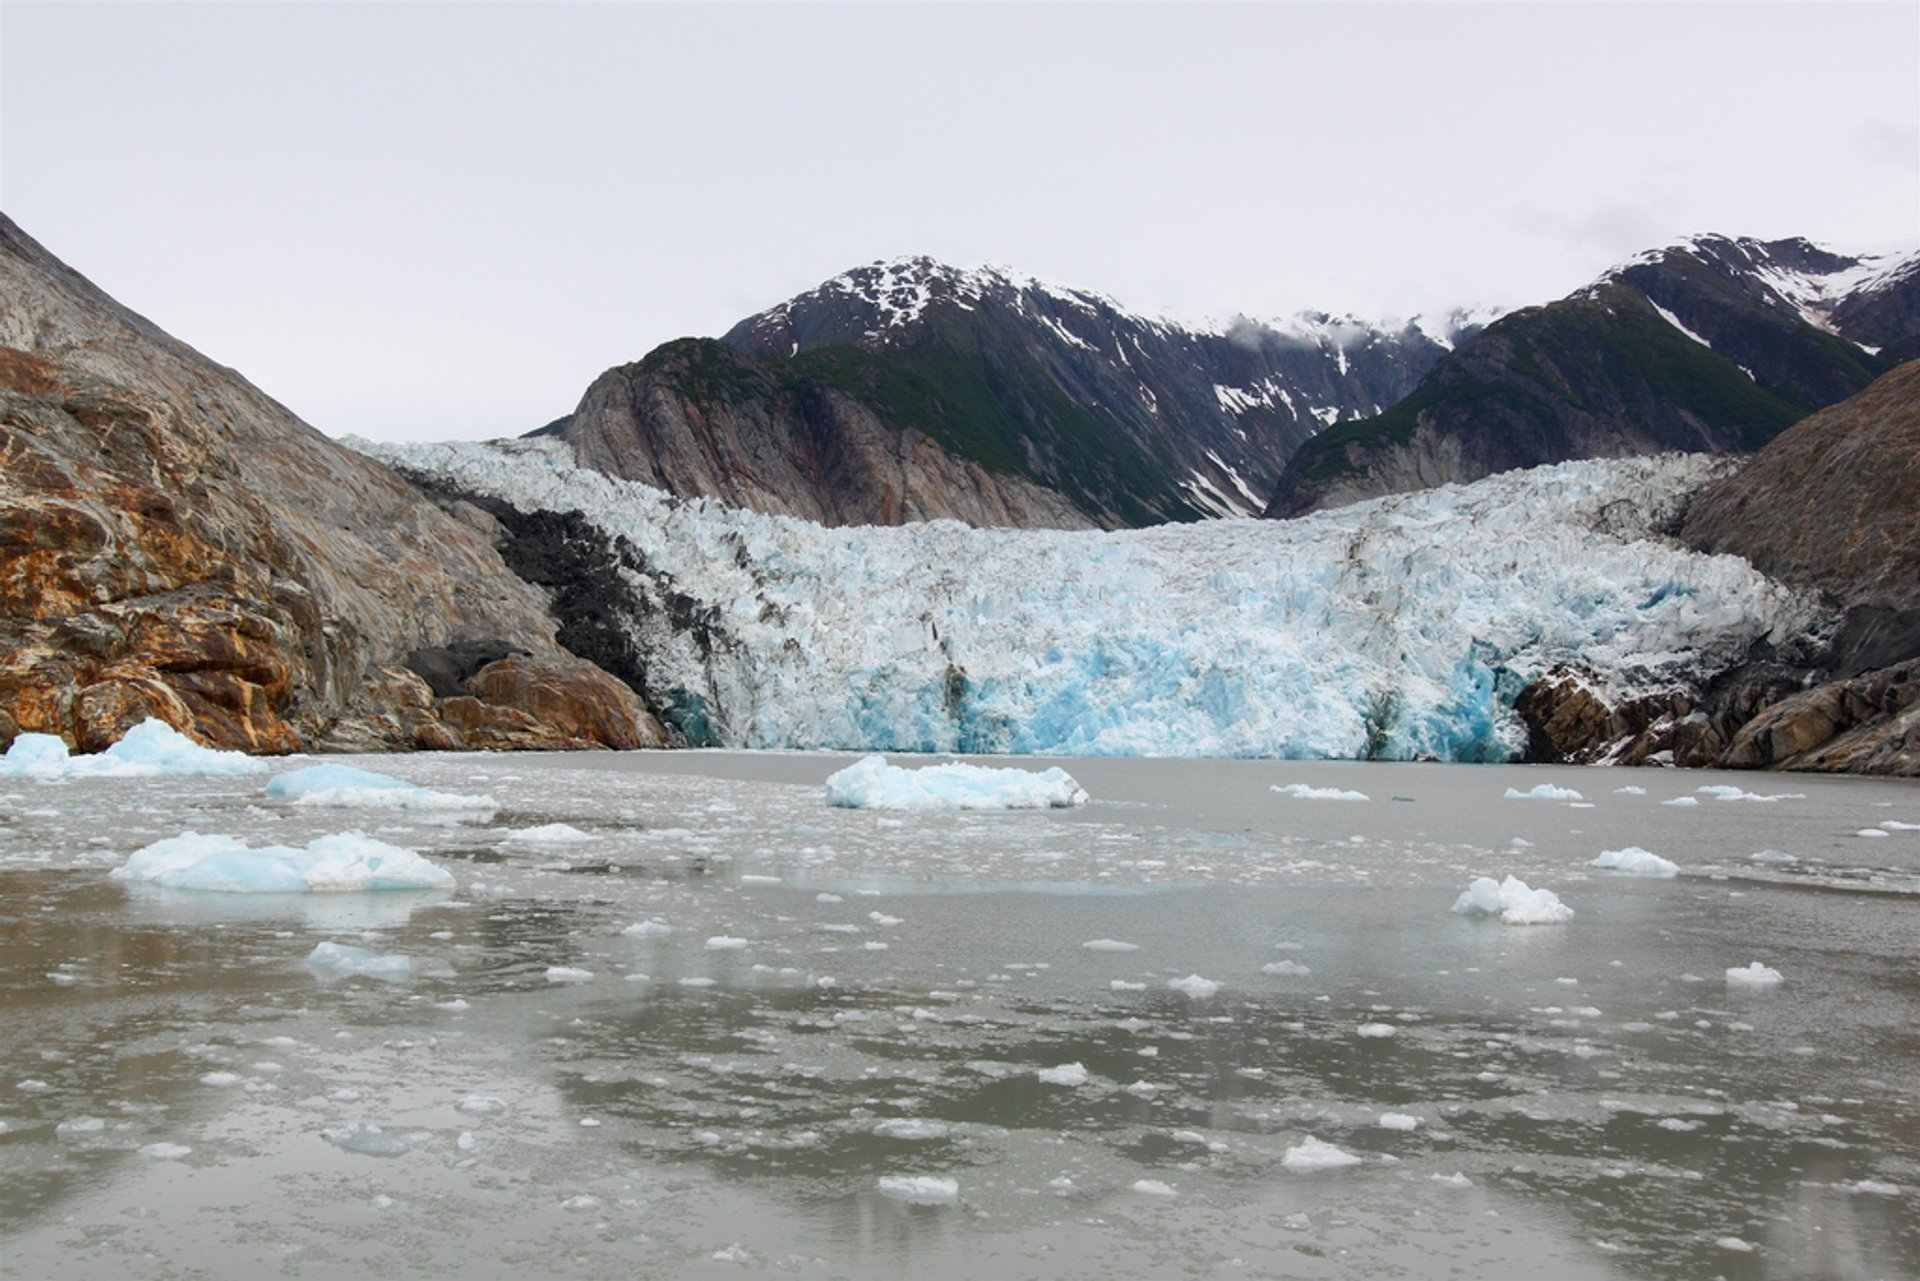 North Sawyer Glacier, Tracy Arm Fjord, AK 2020